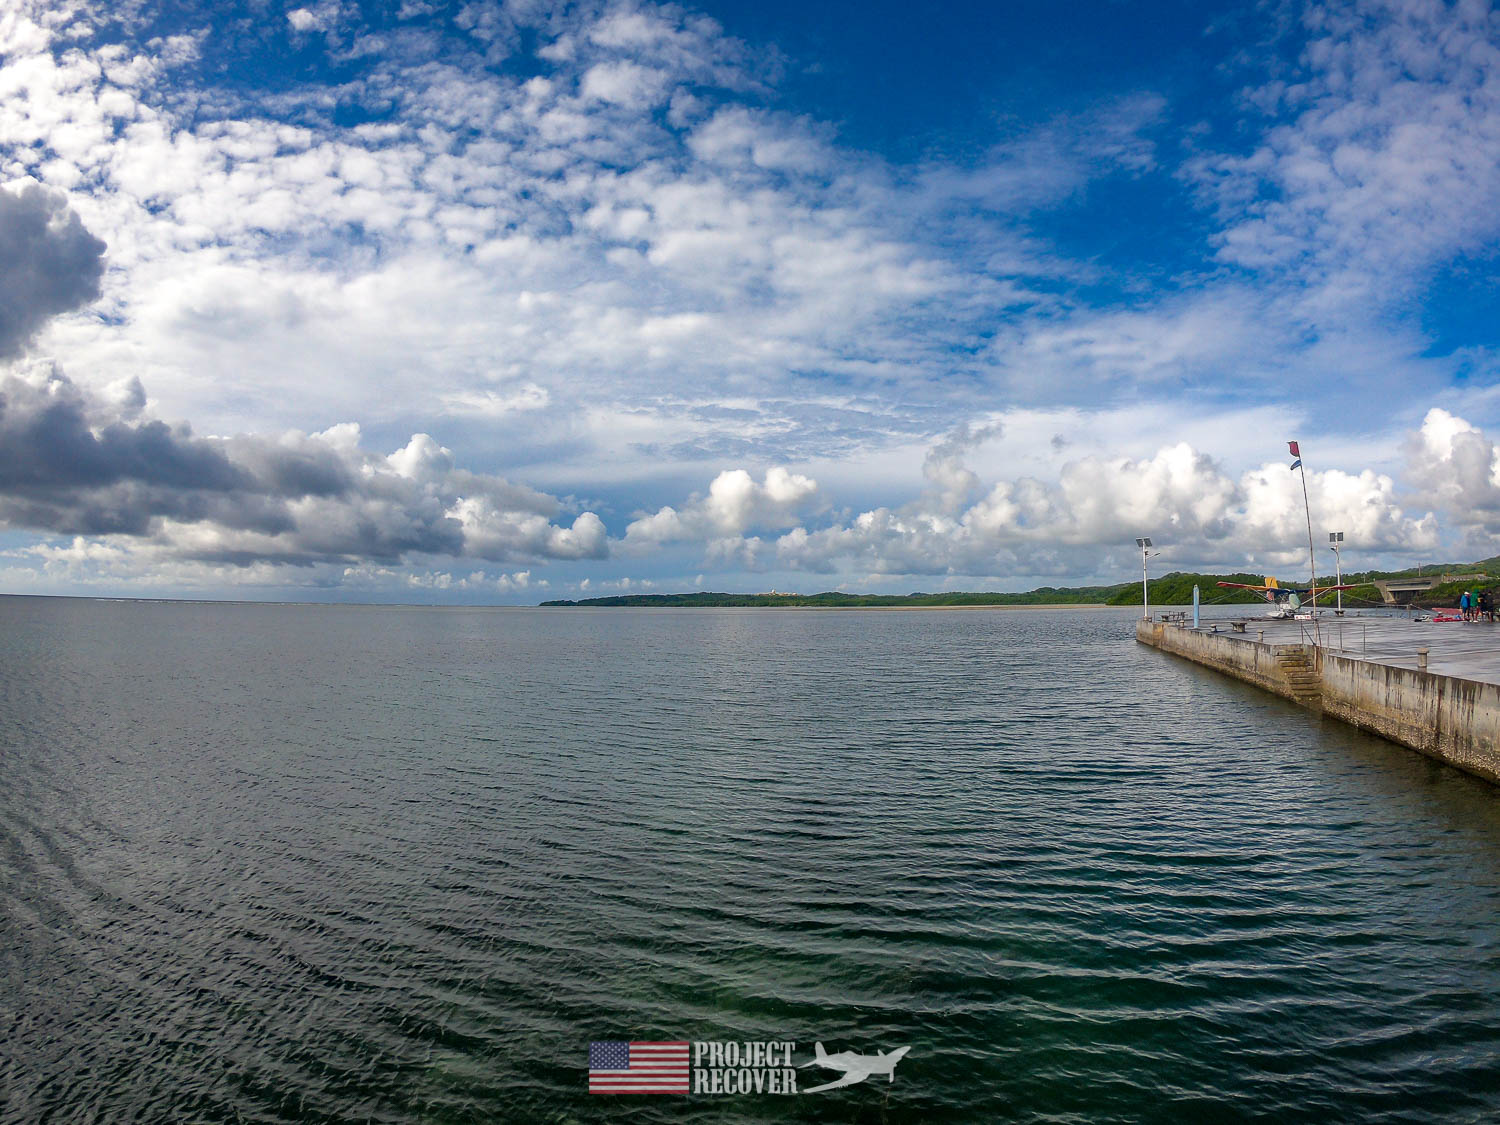 Palau water scene. Execution of WWII POWs and Innocents in Palau - Project Recover is committed to bringing the MIA home. Photos by Harry Parker Photography.com